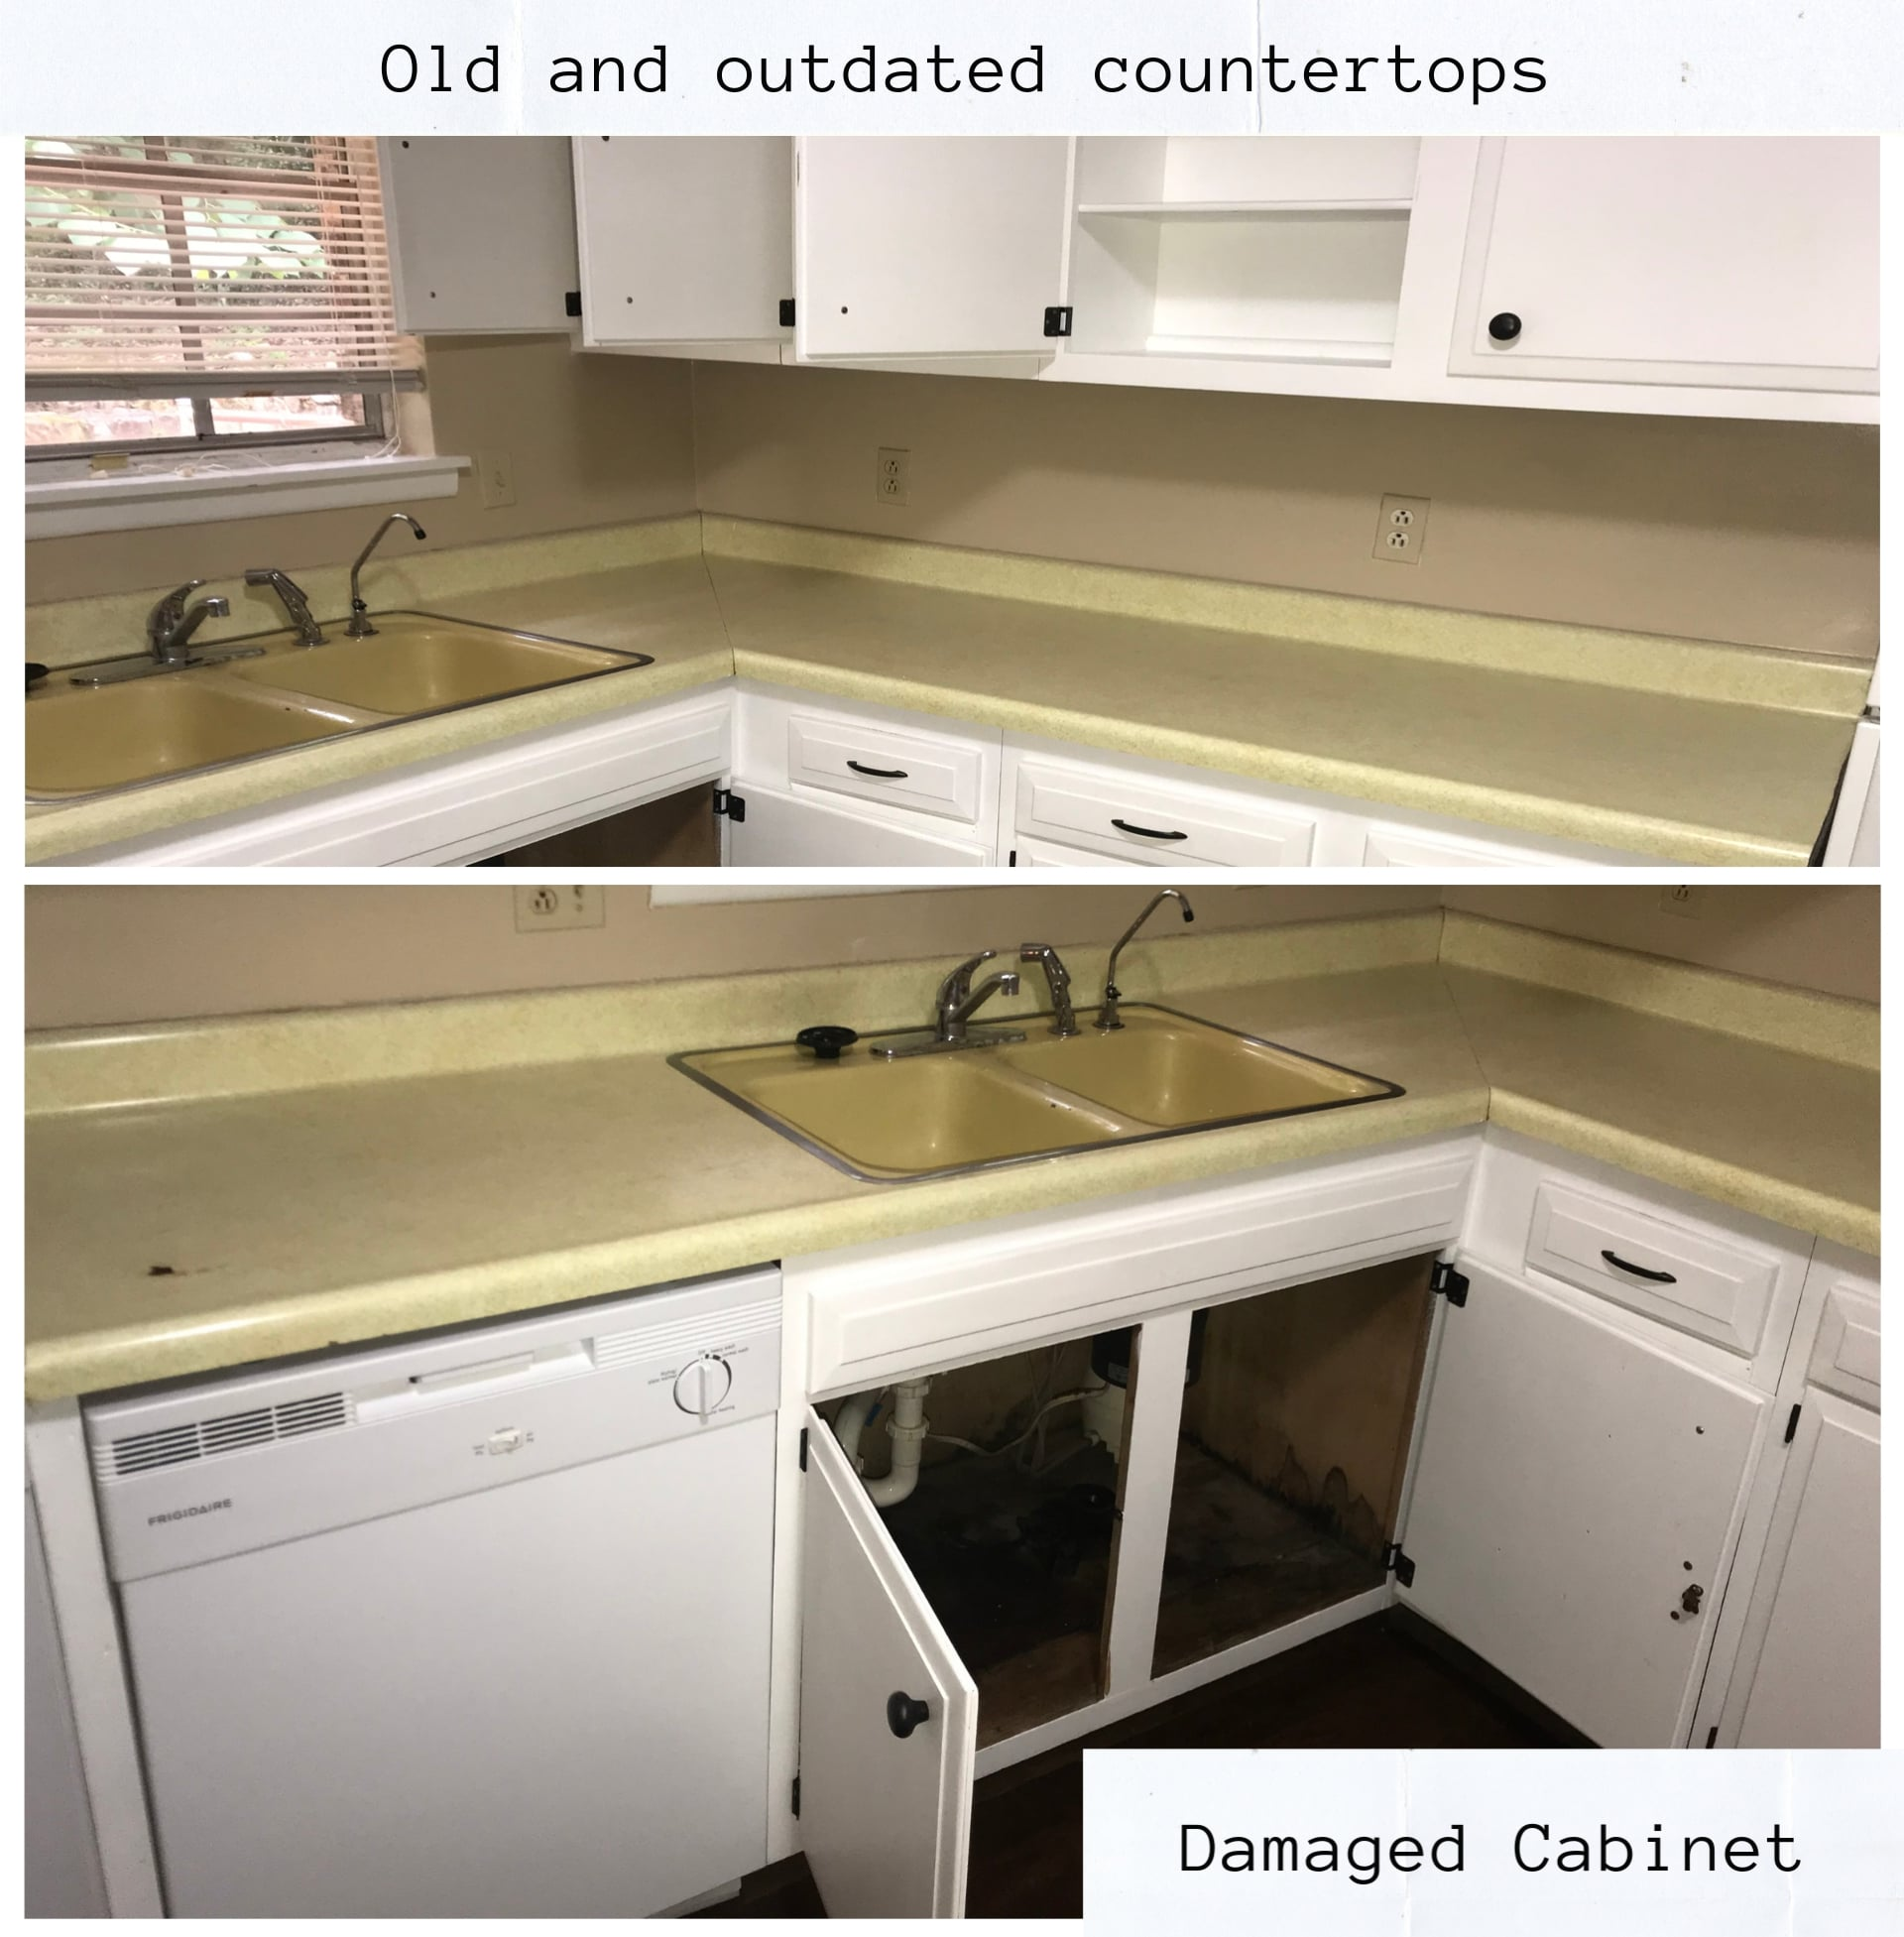 damaged cabinet outdated countertops auburn alabama.jpg